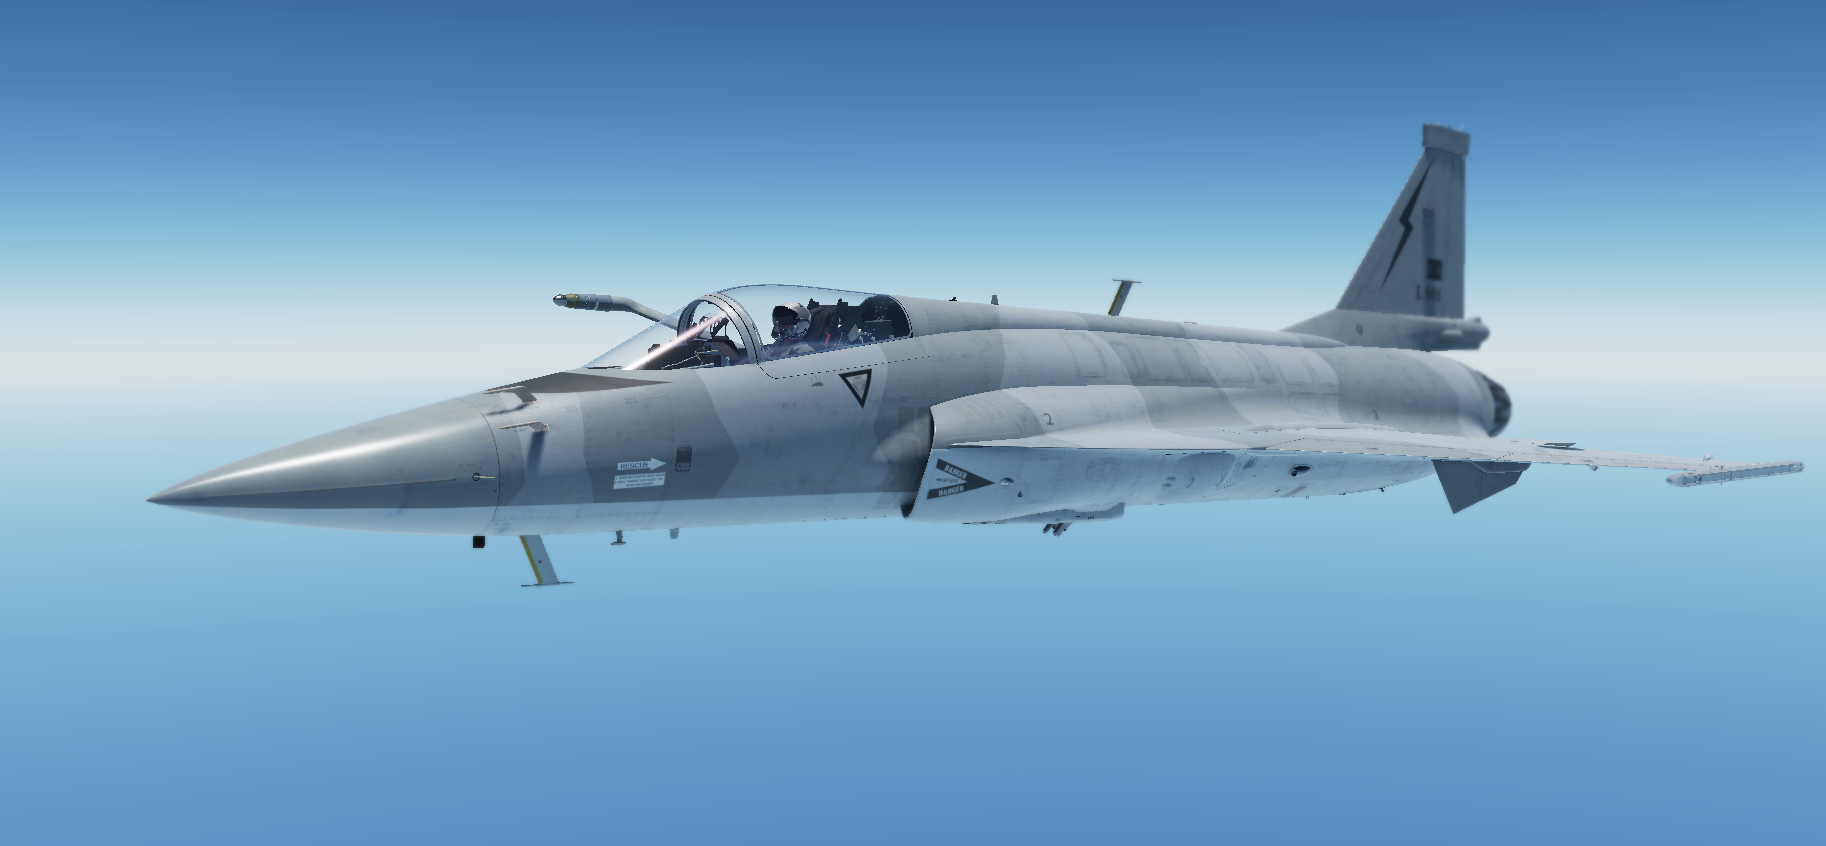 Lebanese JF-17 Thunder (Fictional)